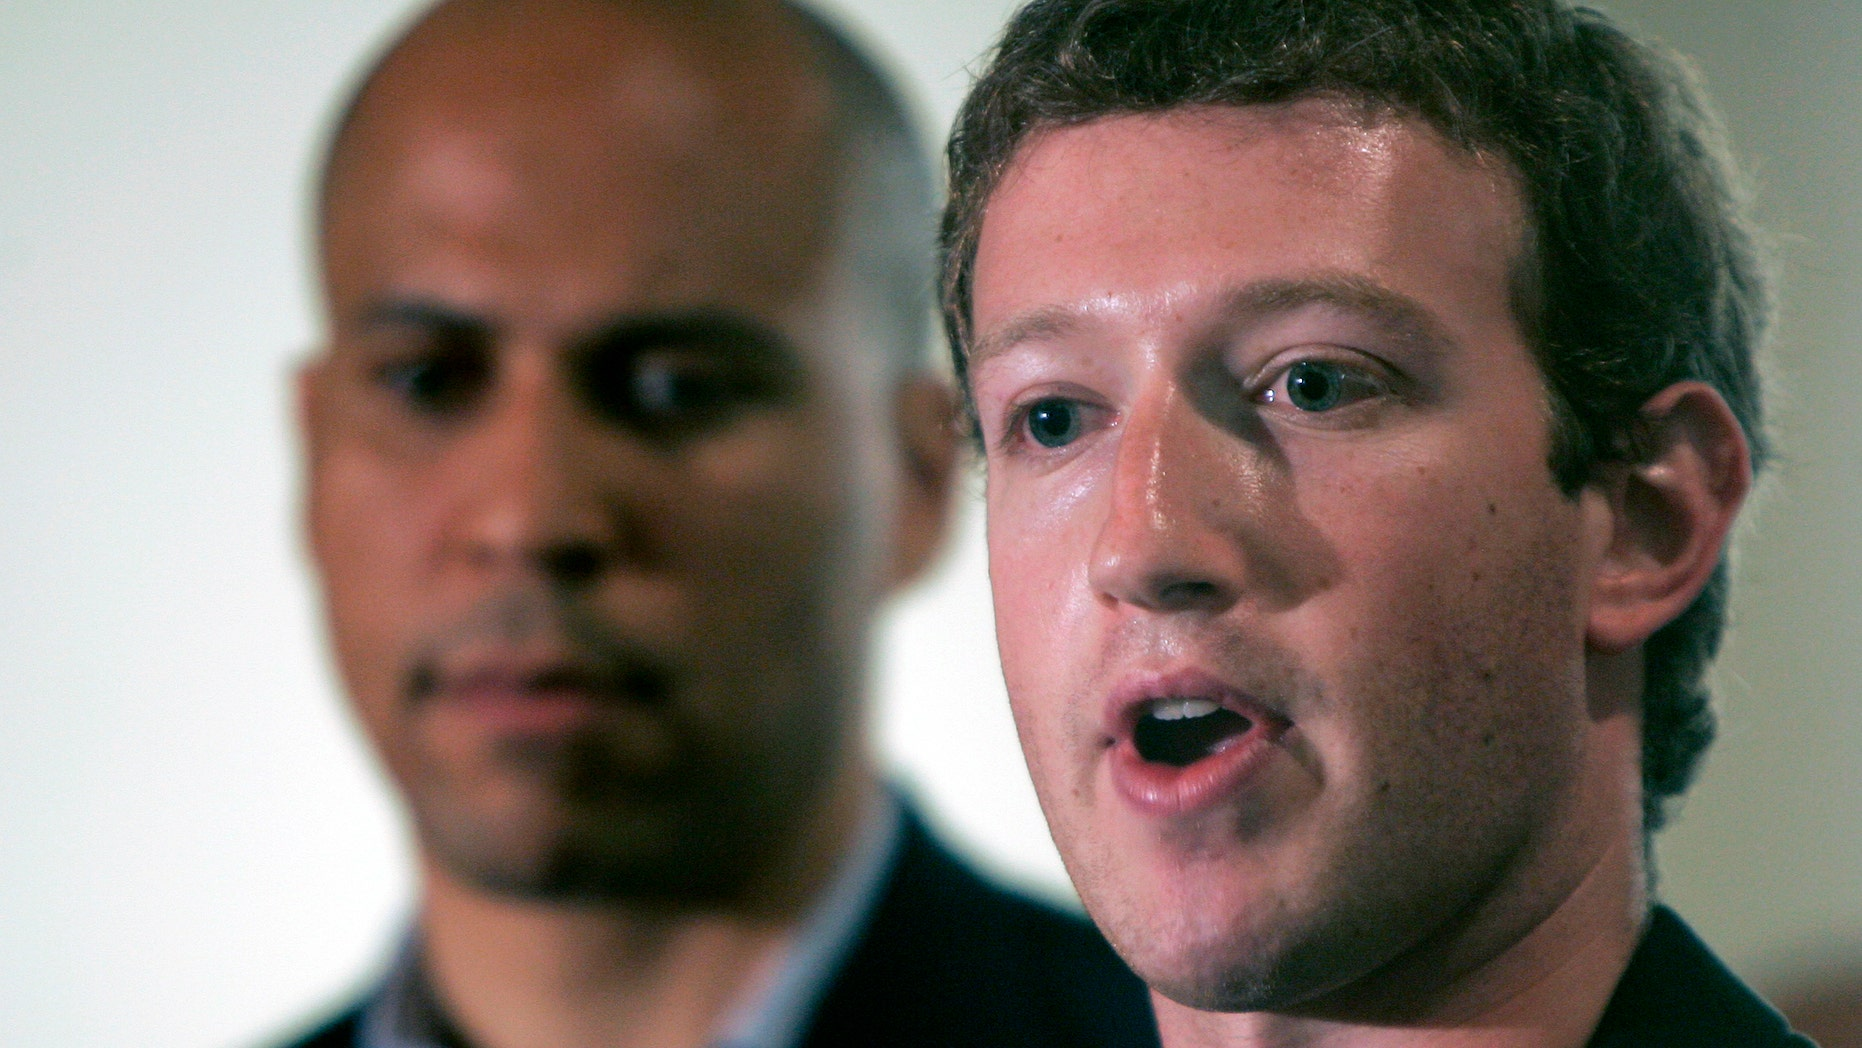 FILE - In this Sept. 25, 2010 file photo, Mark Zuckerberg, right, founder and CEO of Facebook talks about his donation of $100 million to help Newark public schools during a news conference in Newark, N.J. With Zuckerberg is Newark mayor Cory Booker and N.J. Gov. Chris Christie, not in picture.   More than three years after Zuckerberg committed $100 million toward remaking Newark's struggling schools, the district is engulfed in a dispute over proposed large-scale teacher layoffs that is threatening to derail wider reform efforts.   (AP Photo/Rich Schultz)